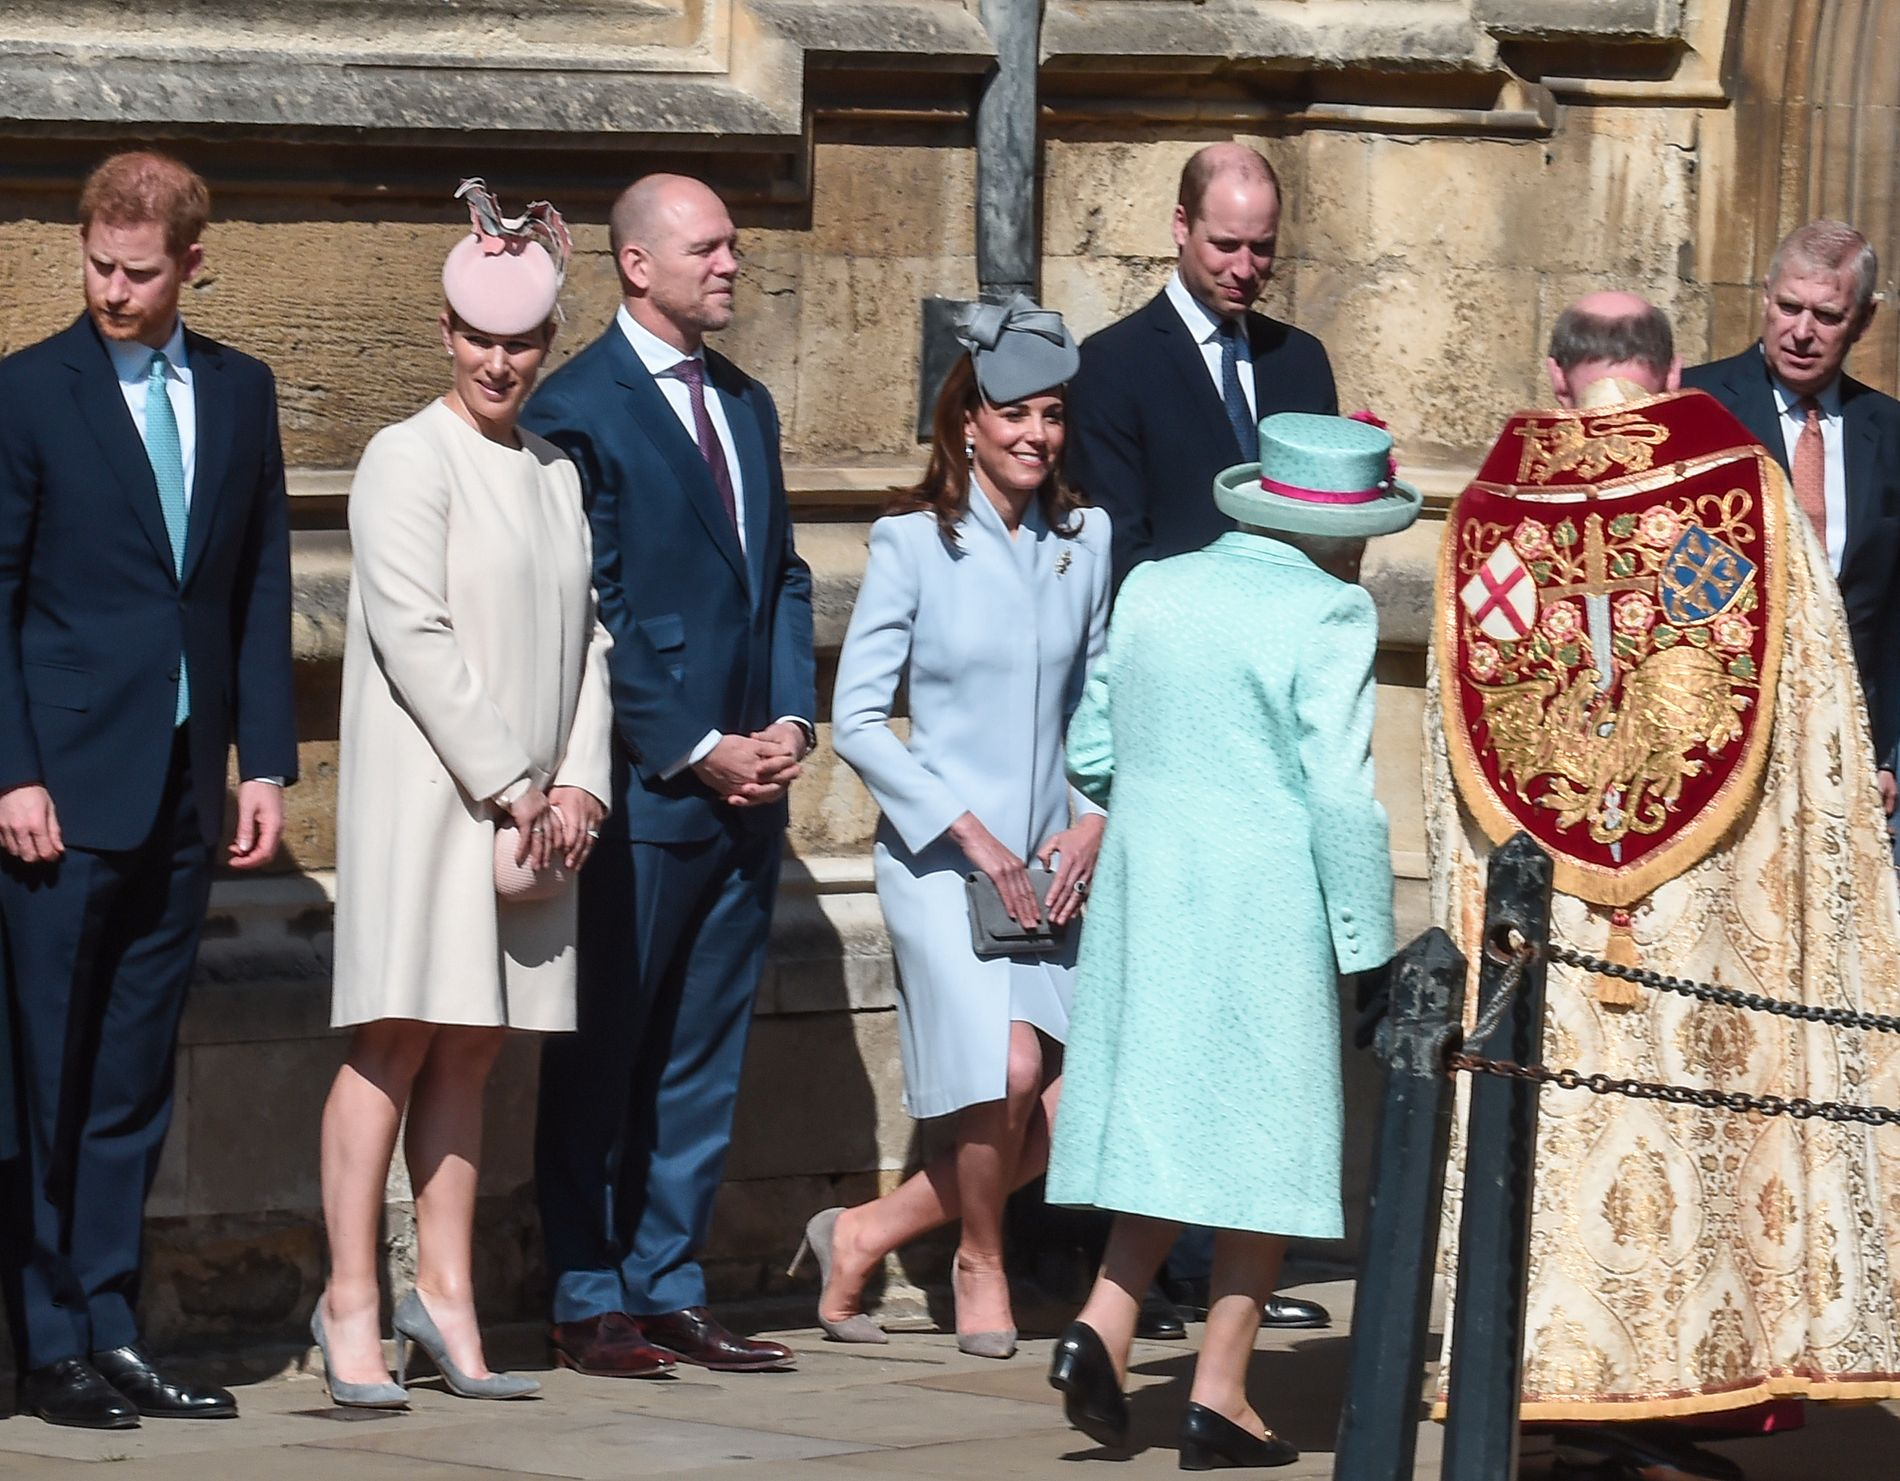 MESSE: Hertuginne Kate neier for dronning Elizabeth utenfor St Georges-kapellet i London søndag. Ellers f.v.: Prins Harry, Zara Tindall (prinsesse Annes datter), Mike Tindall, prins William og prins Andrew.